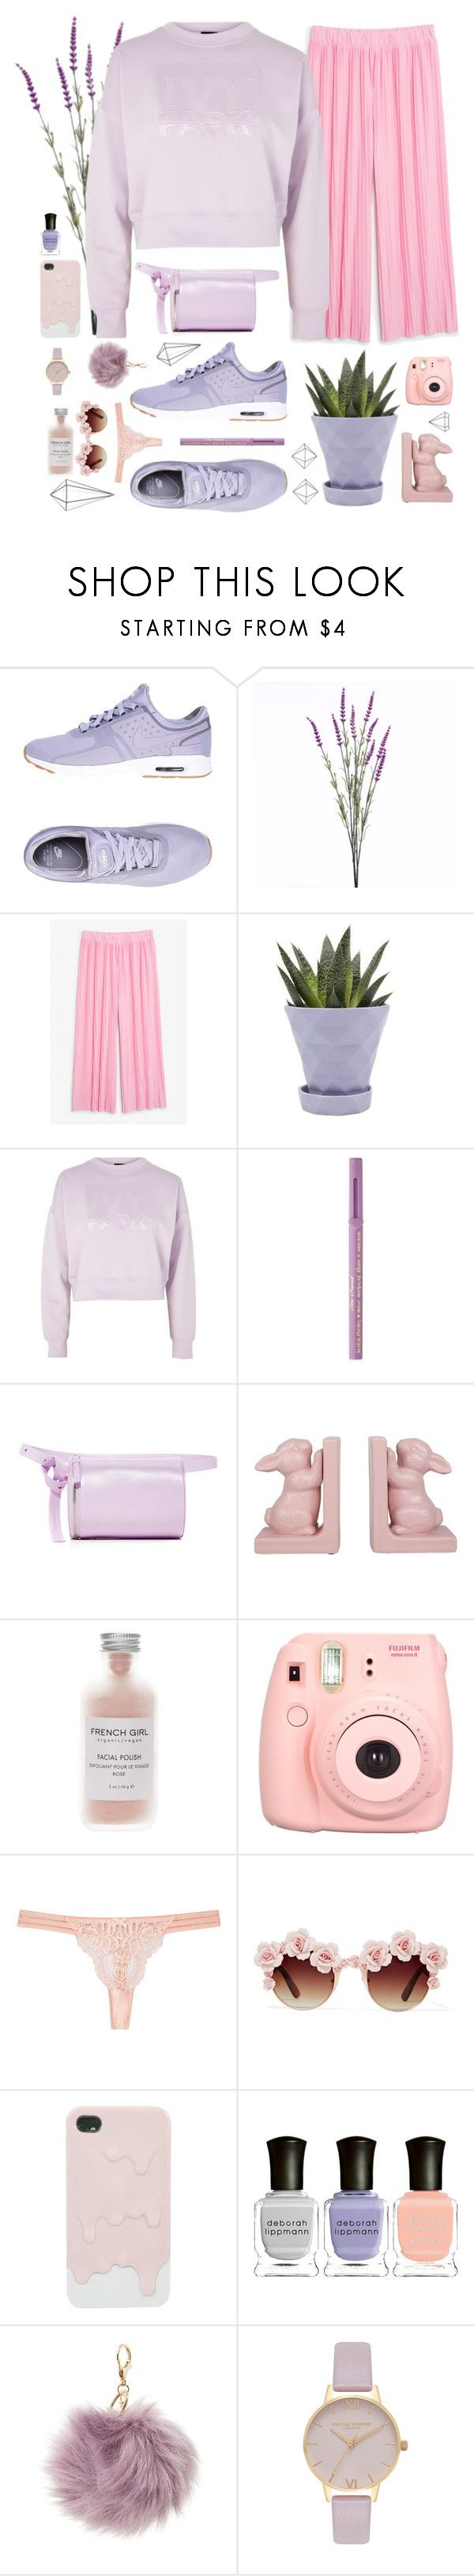 """Lilac&Pink"" by solespejismo on Polyvore featuring moda, NIKE, Wyld Home, Monki, Chive, Topshop, Too Faced Cosmetics, Building Block, French Girl y Fujifilm"